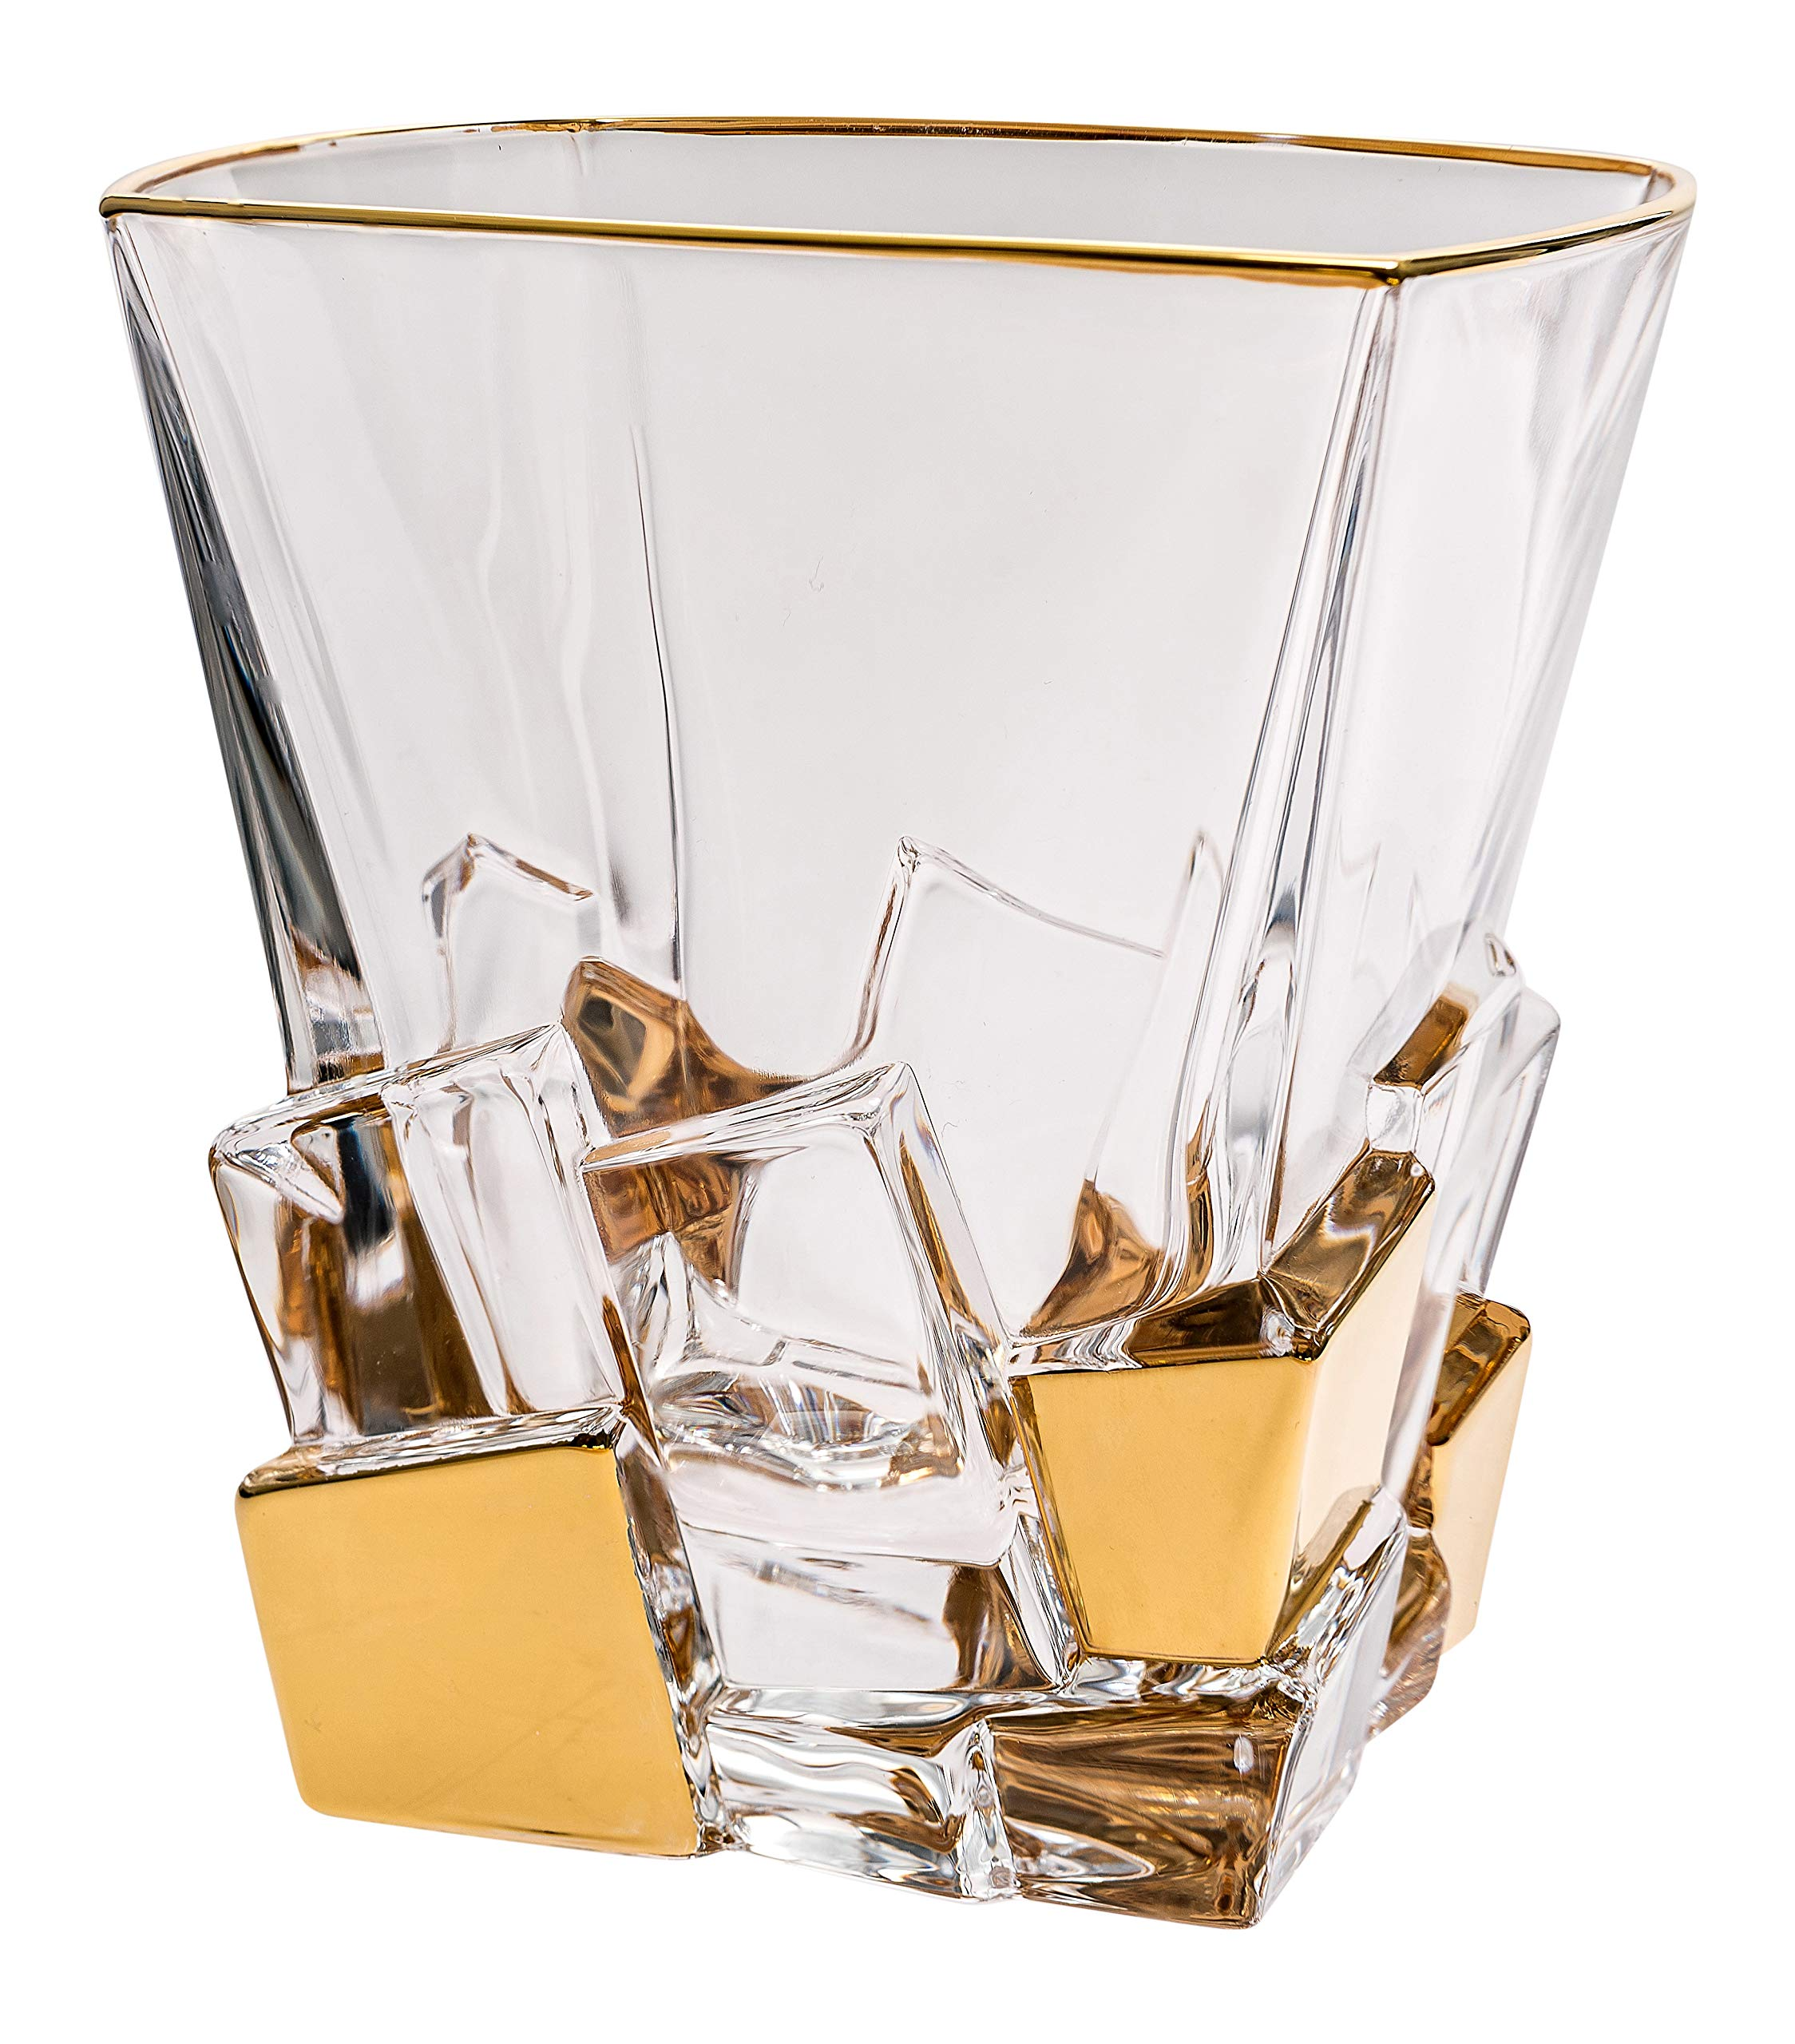 Barski - European Quality Glass - Crystal - Set of 6 - Square Shaped - Double Old Fashioned Tumblers - DOF - 11.7 oz. - with Gold Ice Cubes Design - Glasses are Made in Europe